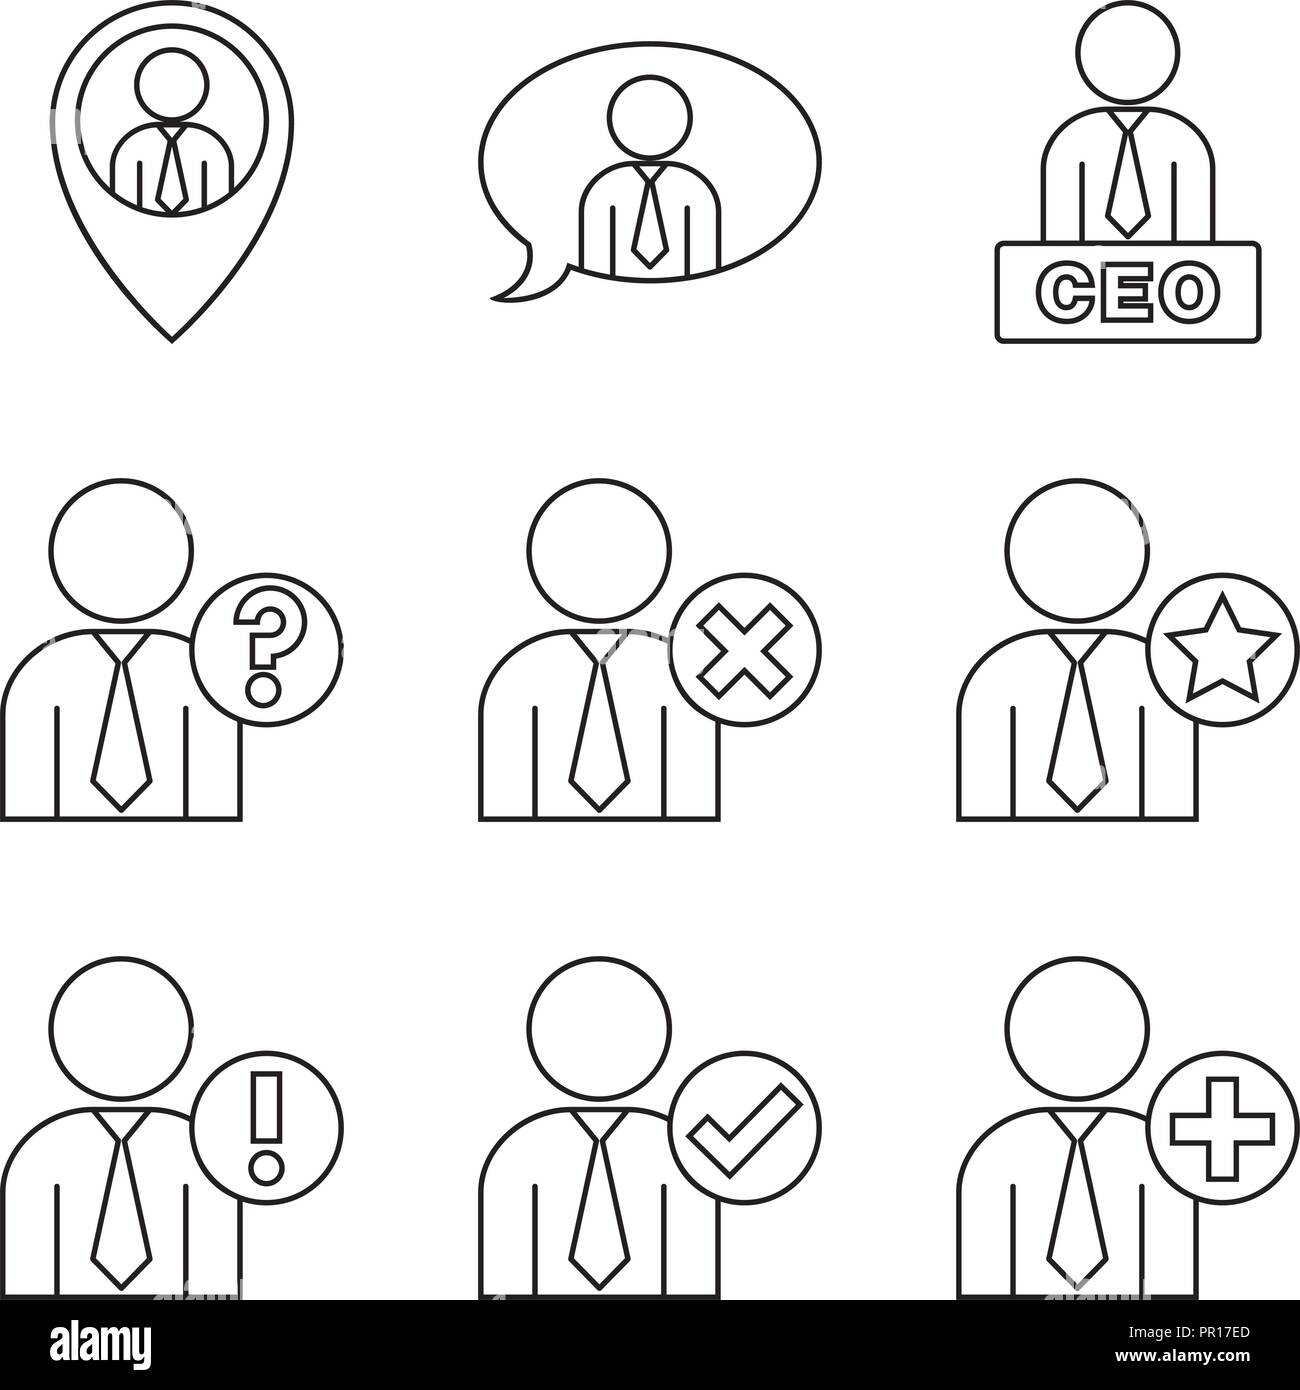 User interactions - Stock Image